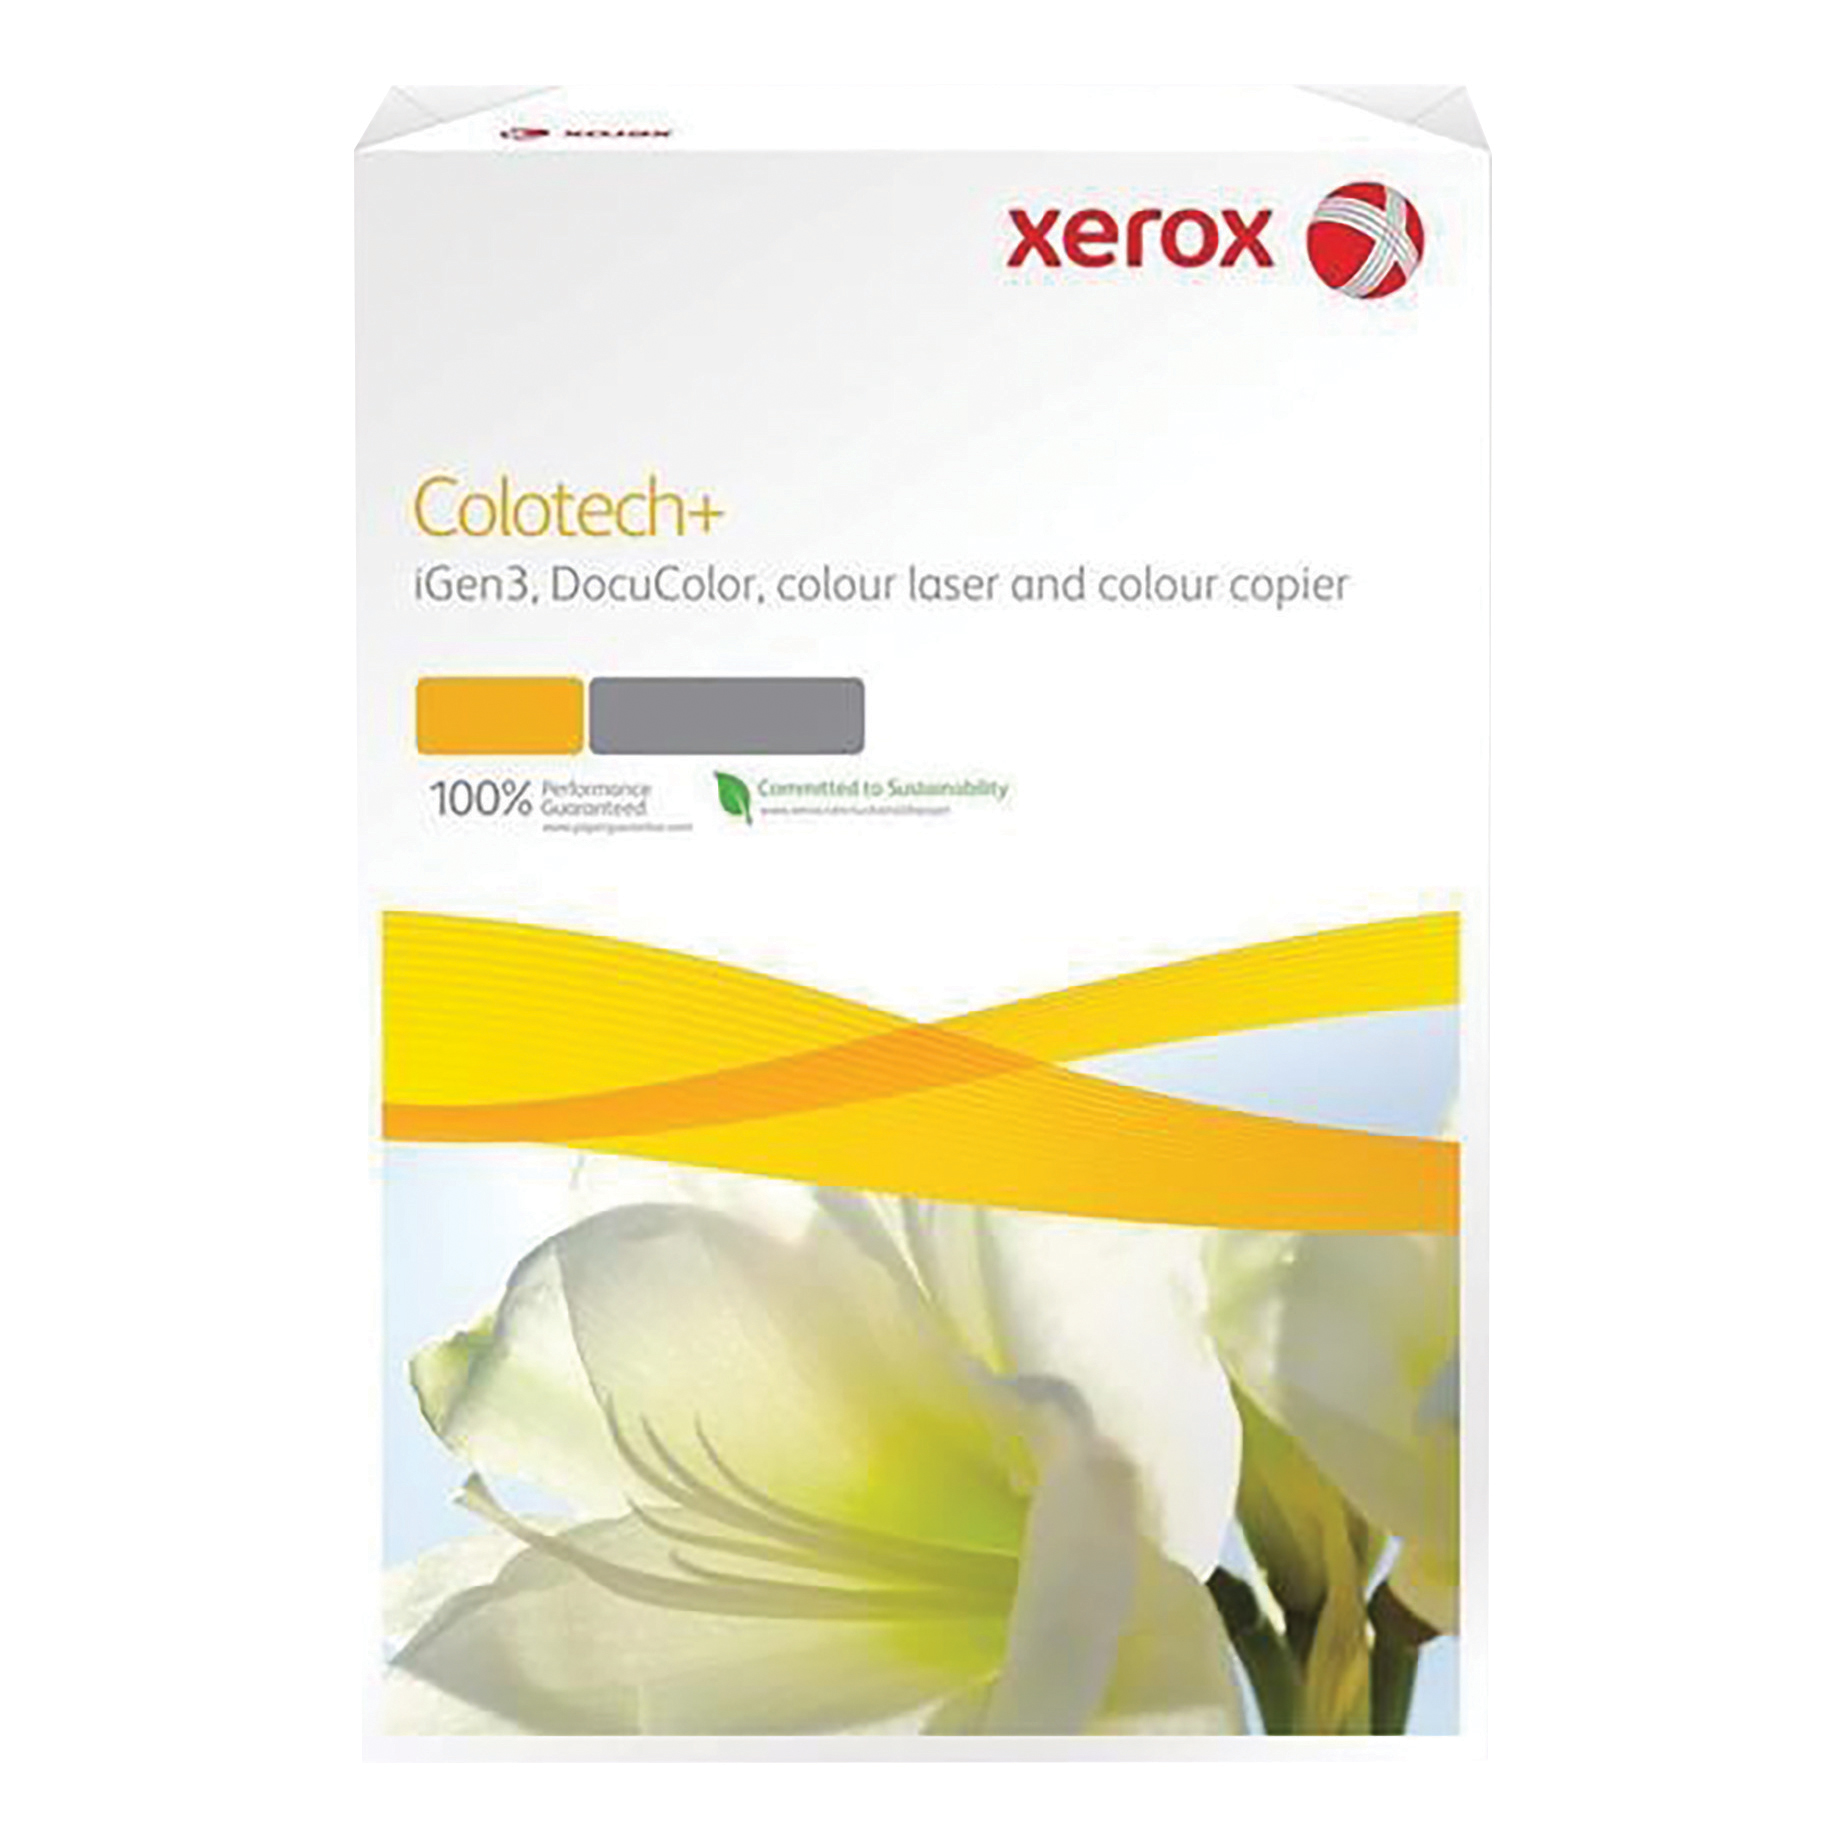 Xerox Colotech+ Digital Colour Paper Premium Ream-Wrapped 90gsm A3 White Ref 63887 500 Sheets